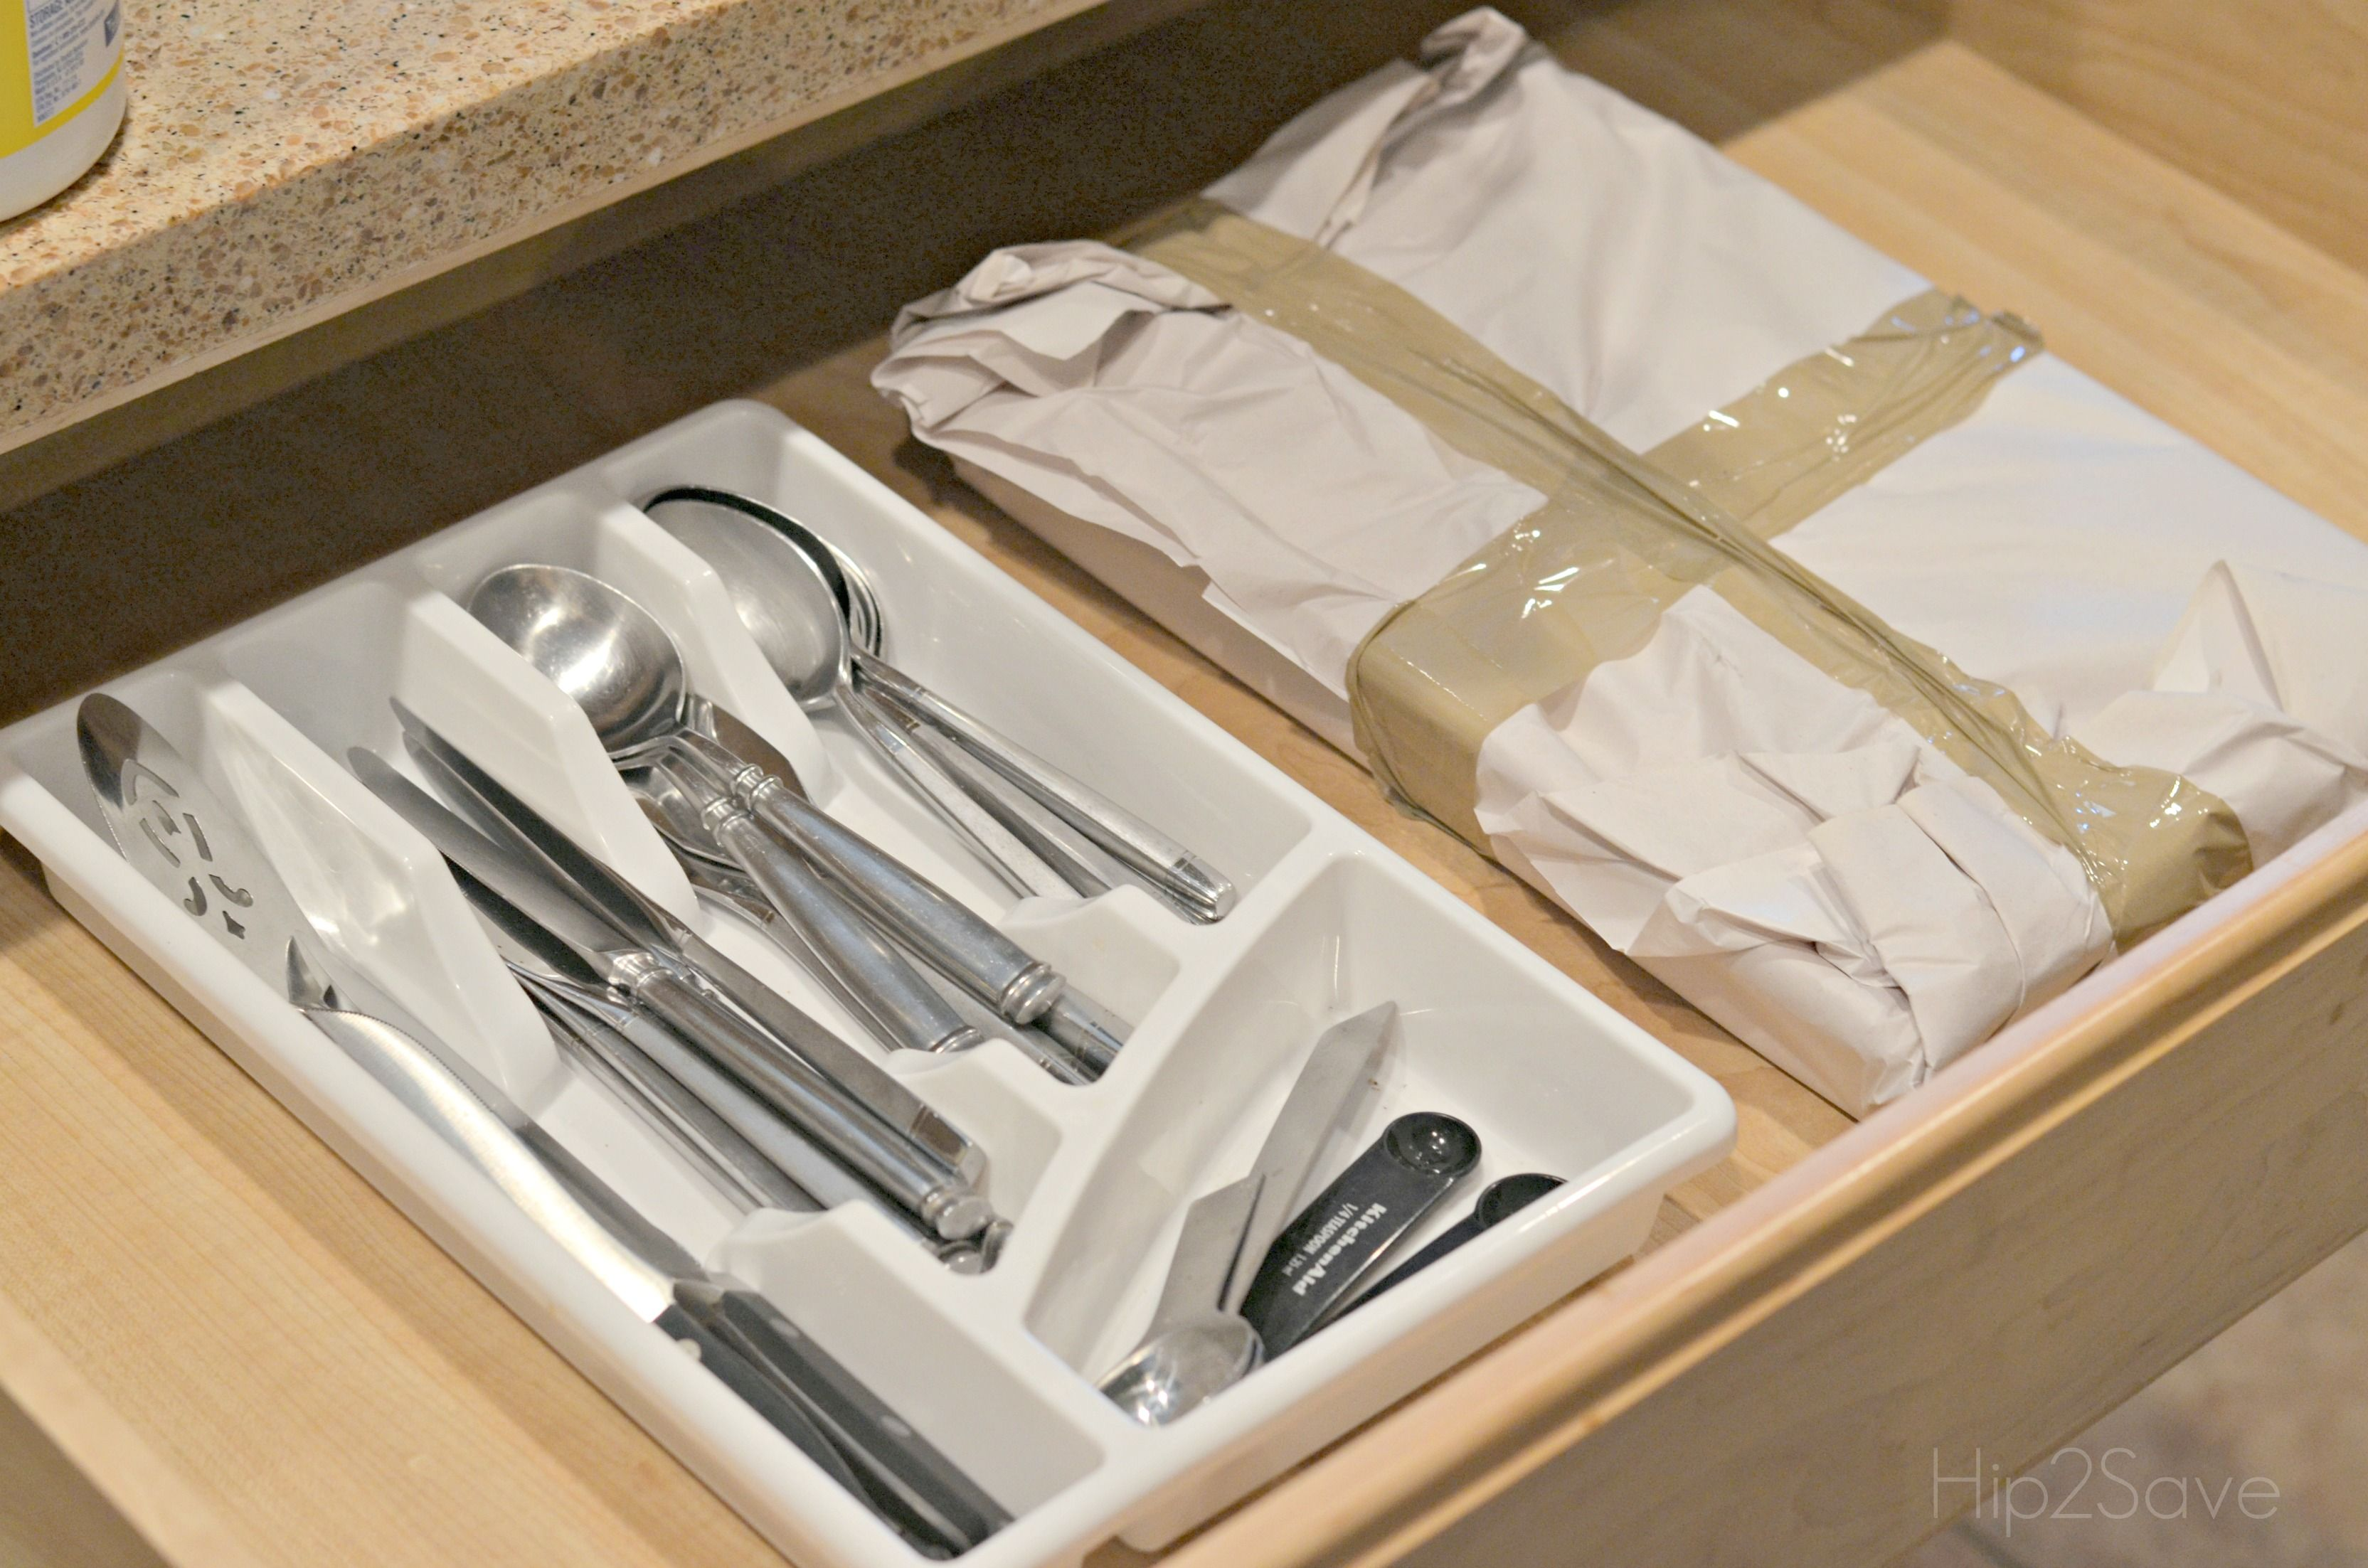 Wrap Your Silverware Trays In Paper And Tape Or Plastic Wrap Jpg 3 329 2 205 Pixels Packing To Move Moving Tips Moving House Tips